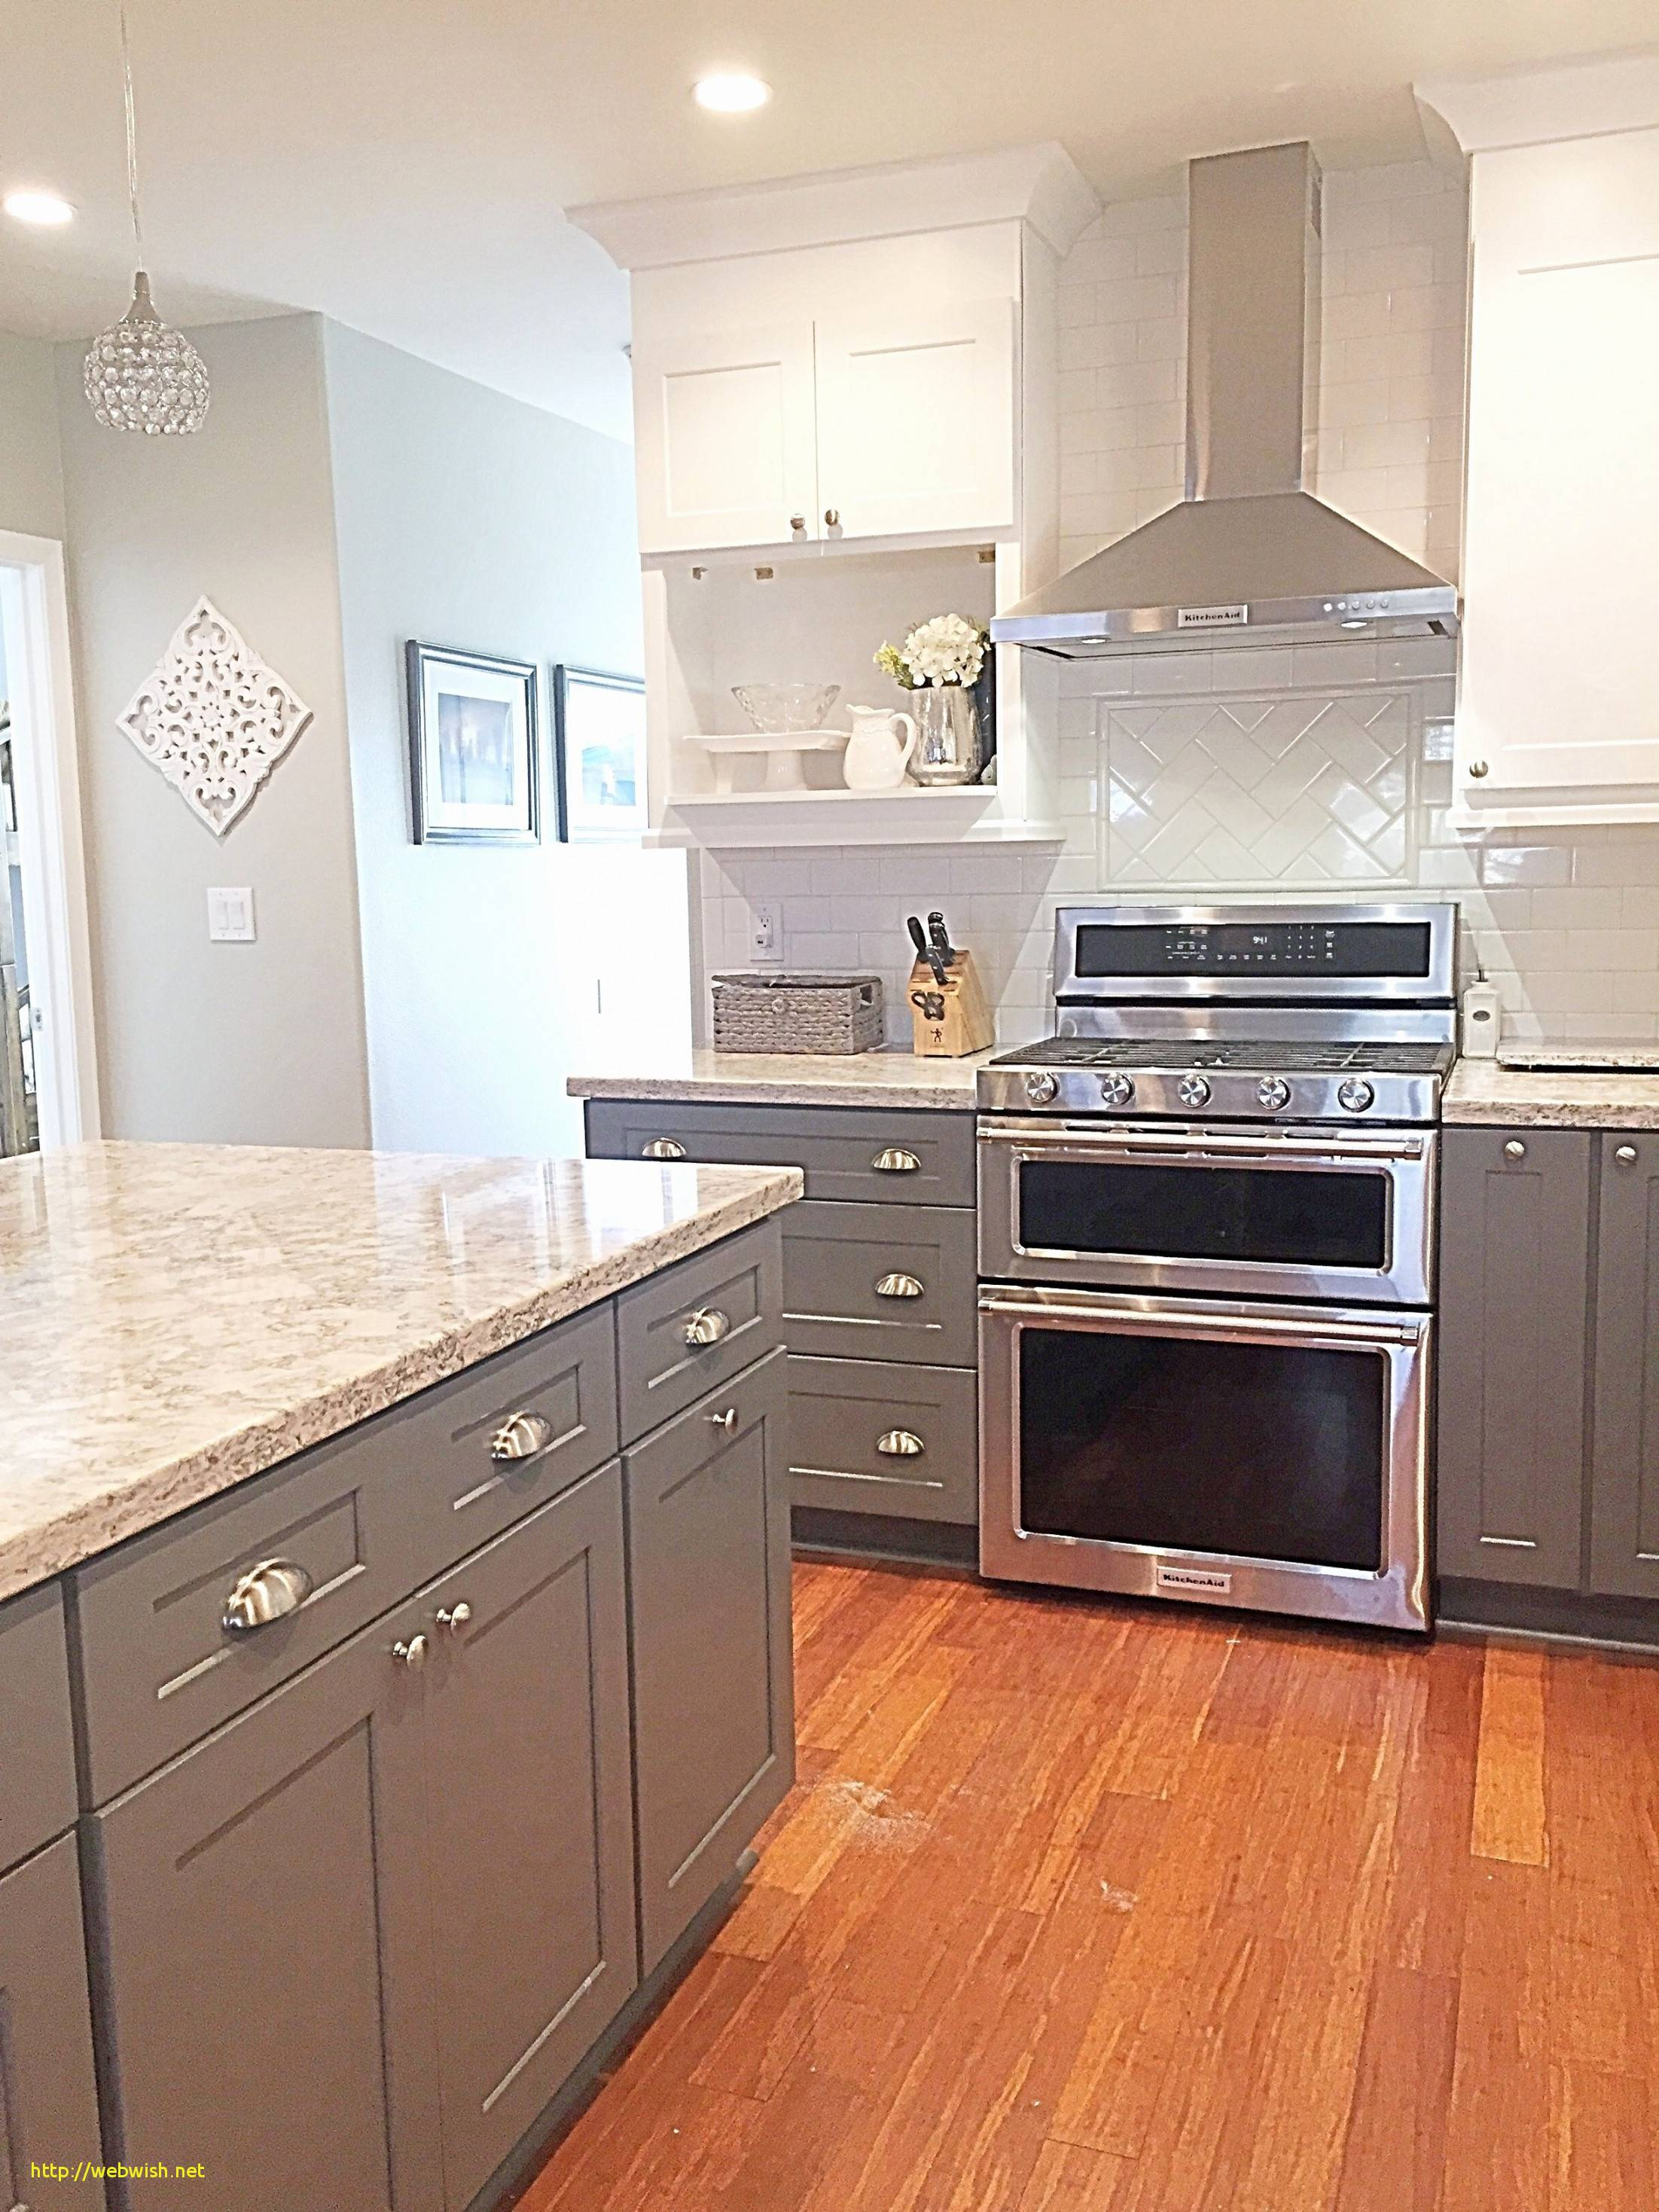 white kitchen cabinets with stainless steel appliances unique white kitchens with stainless steel appliances s haccptemperature of white kitchen cabinets with stainless steel appliances